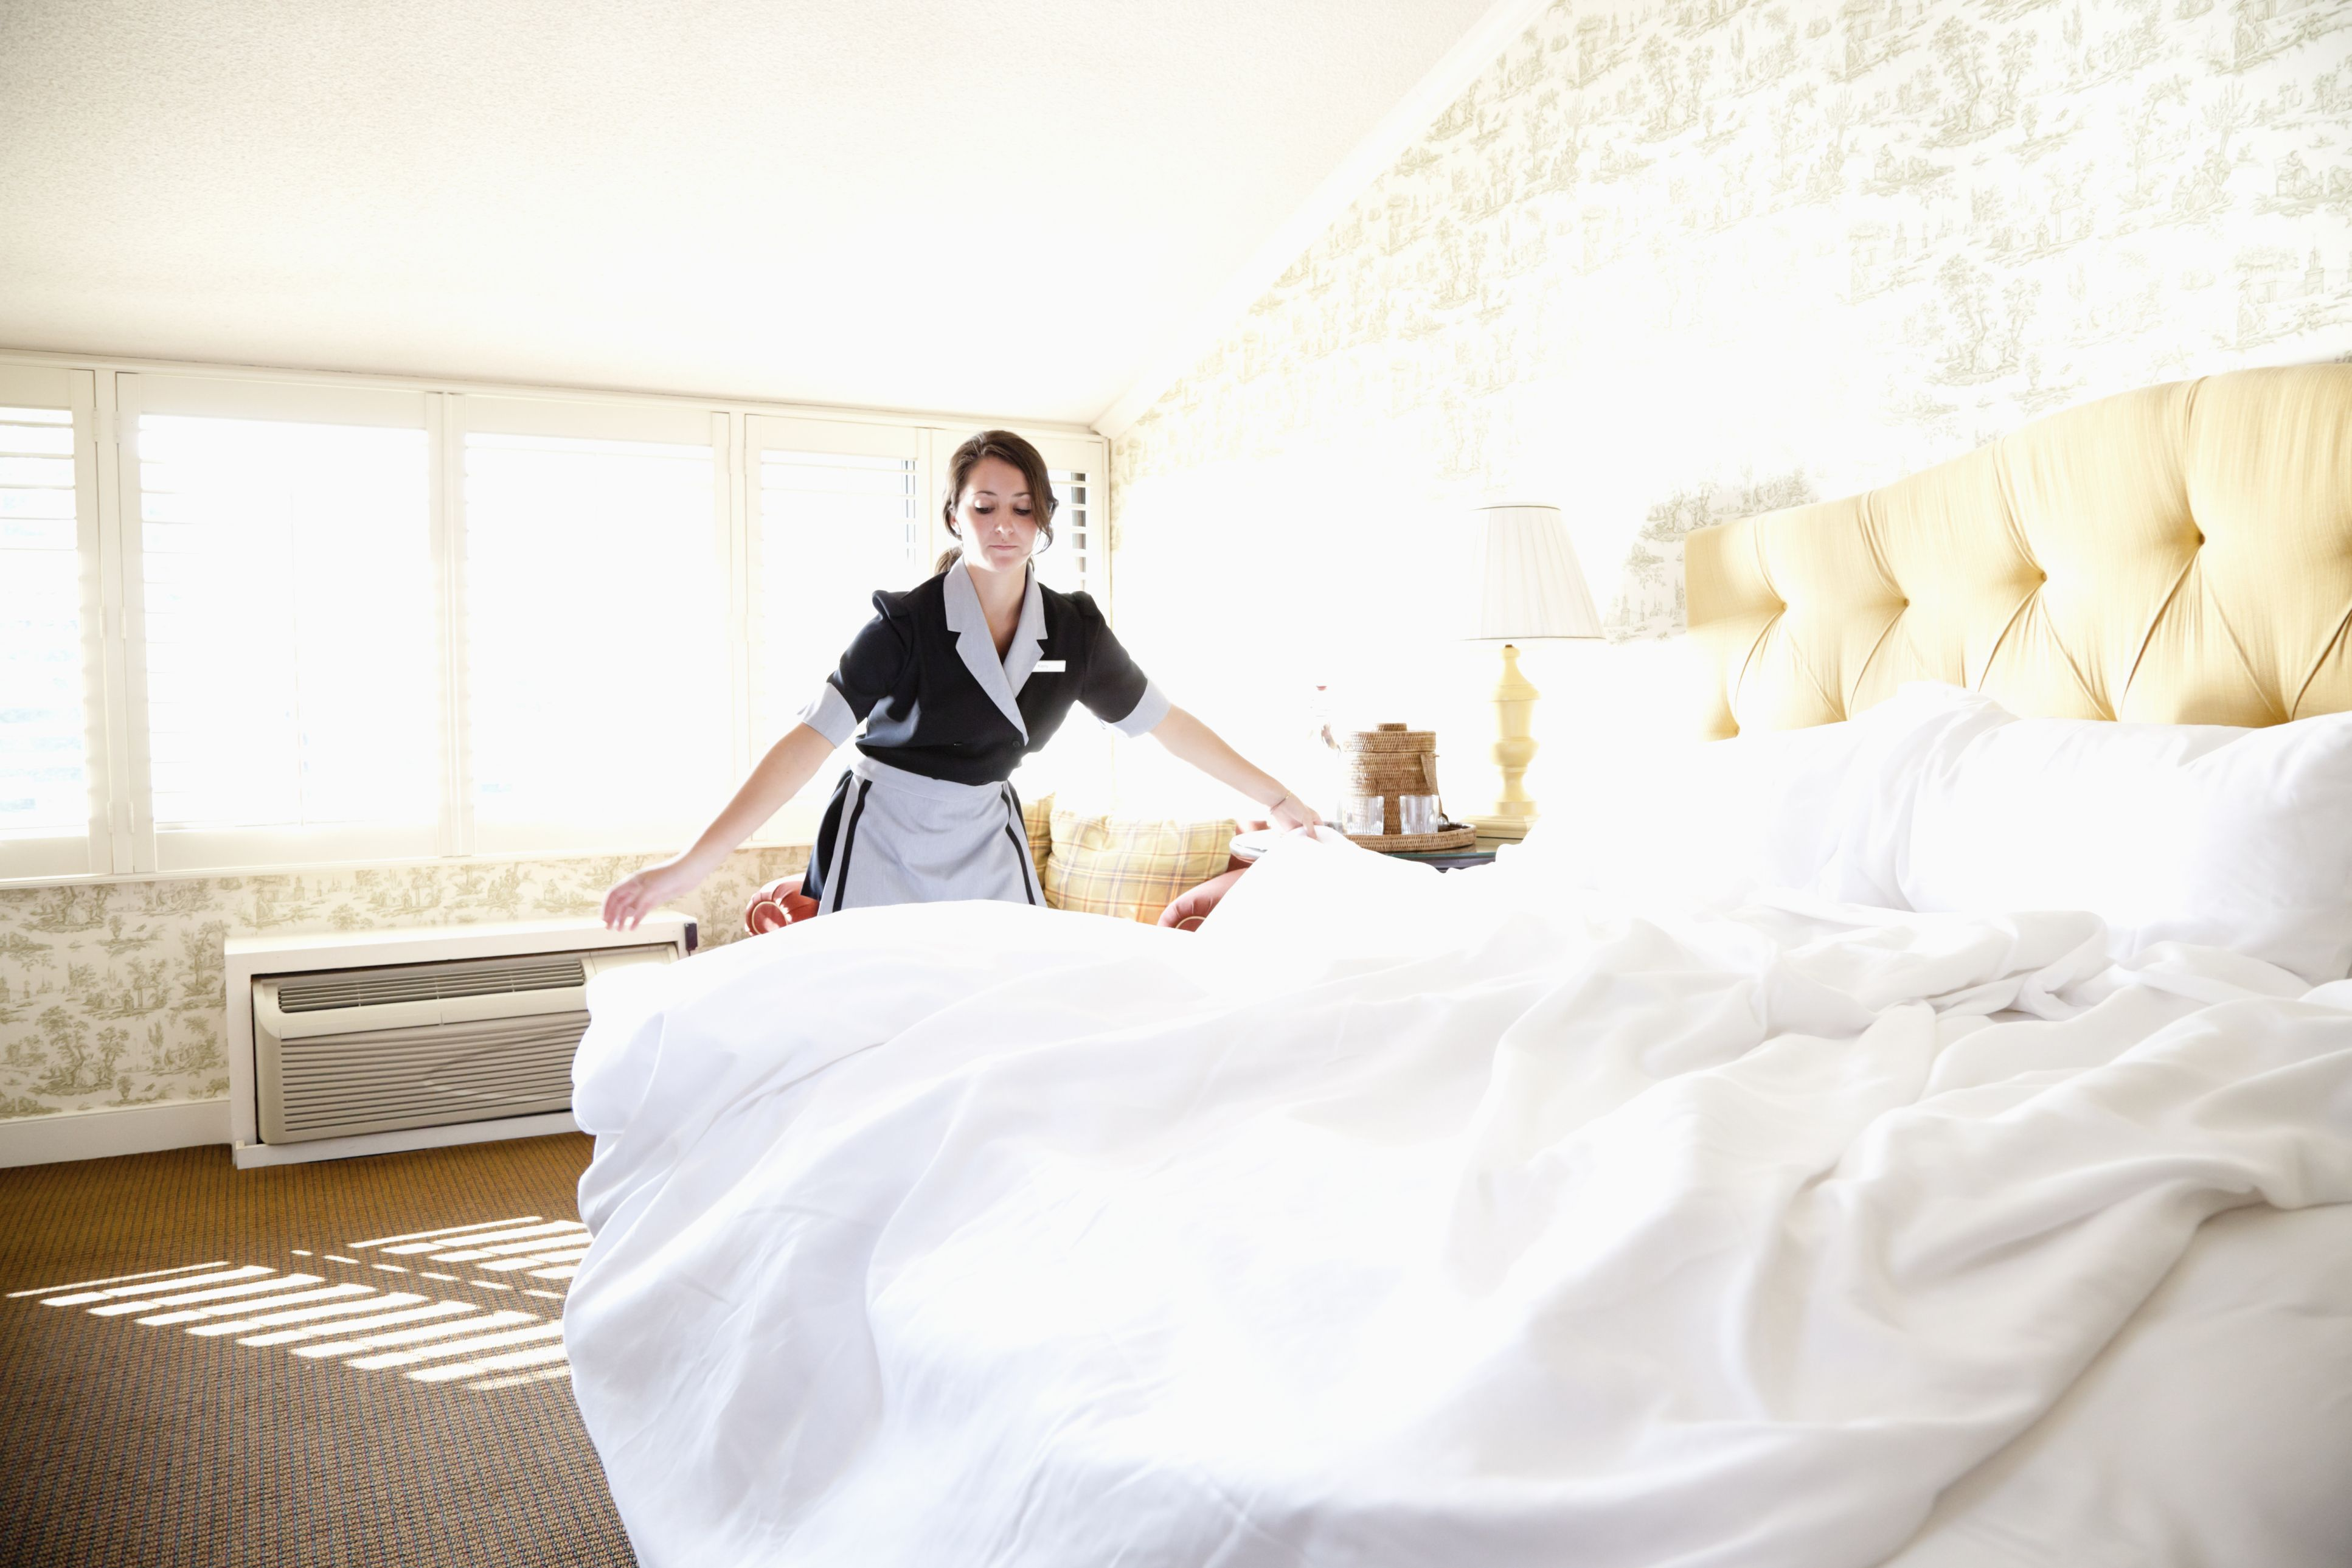 Strange Cleaning Secrets Of Hotel Maids Professional House Download Free Architecture Designs Sospemadebymaigaardcom